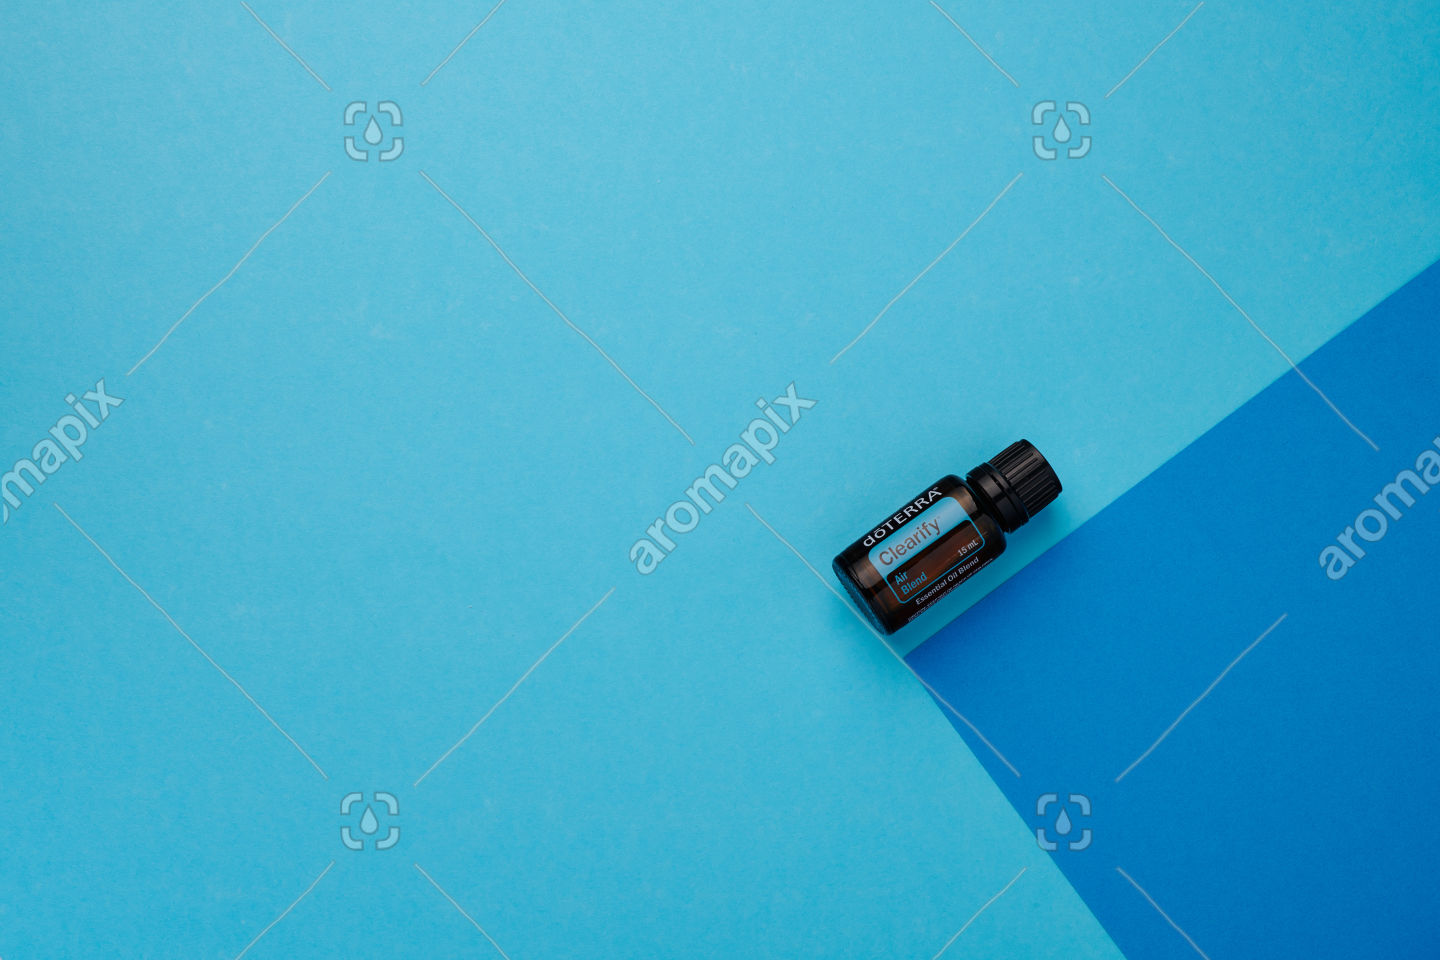 doTERRA Clearify on a dark blue and light blue background